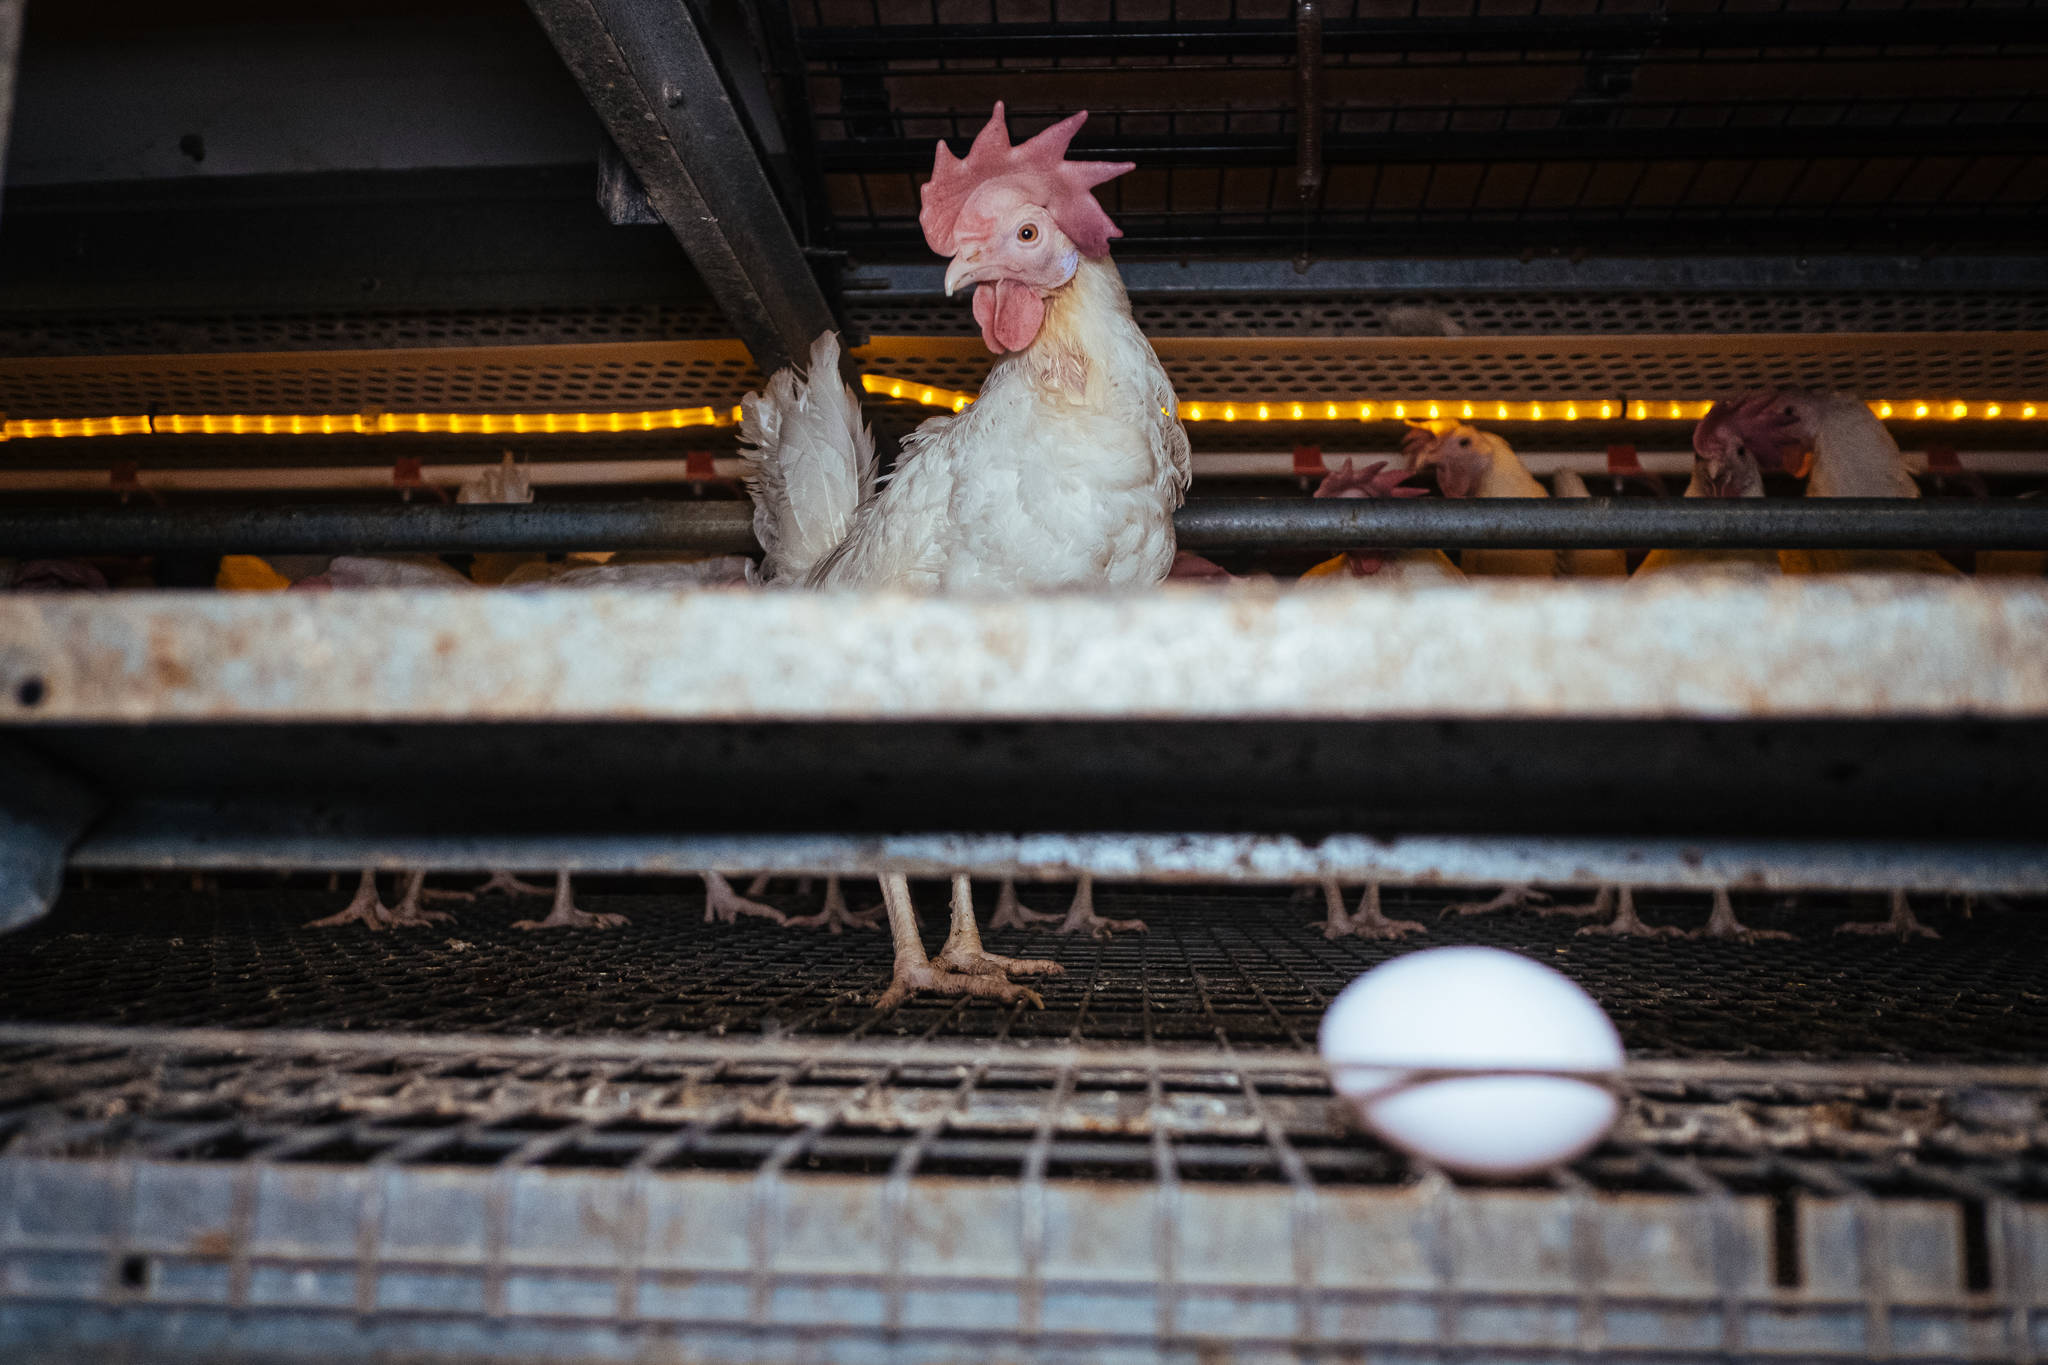 Egg laying chickens in a free-run barn. (Photo by: Clément Martz)